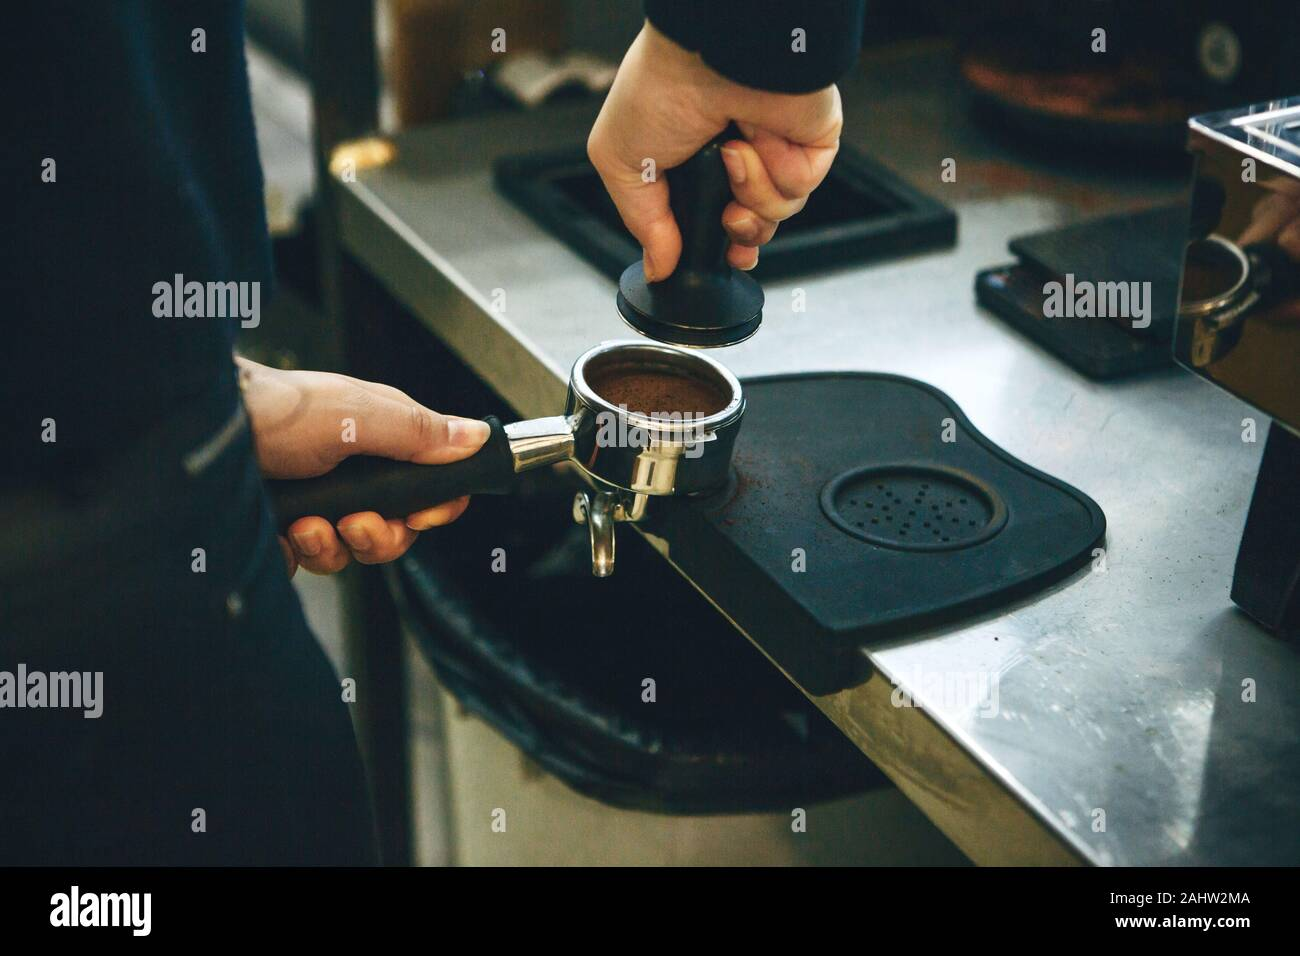 Barista presses ground coffee using tamper. Close-up view on hands with portafilter Stock Photo